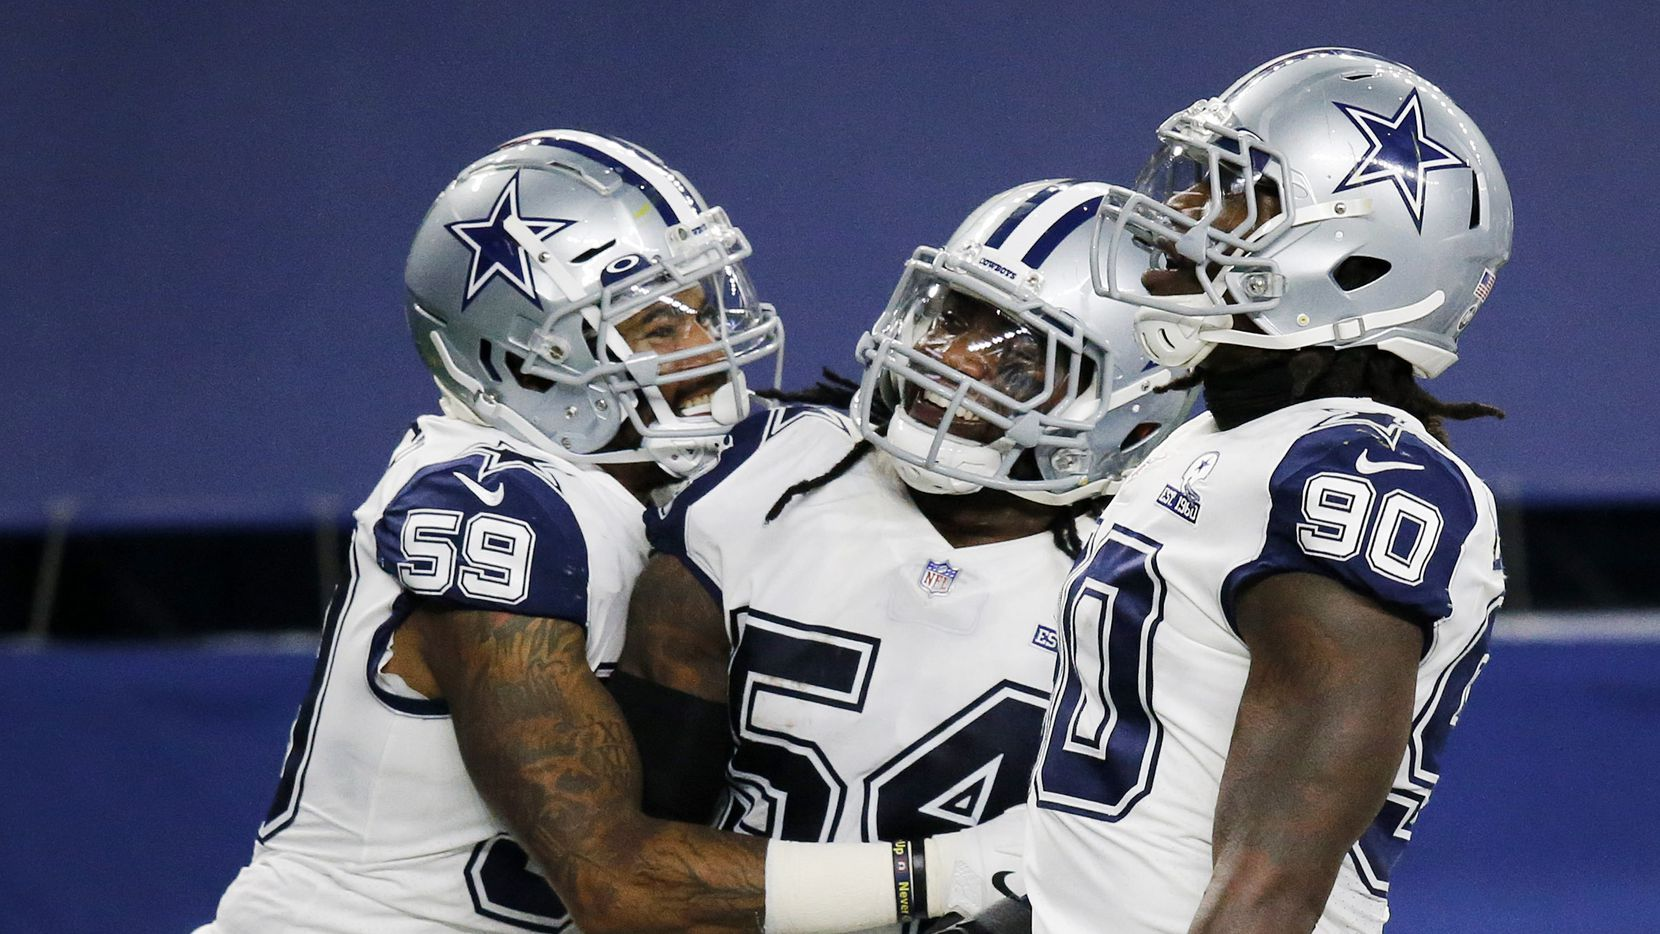 Dallas Cowboys middle linebacker Jaylon Smith (54) is congratulated on his third quarter interception return by linebacker Justin March (59) and defensive end DeMarcus Lawrence (90) at AT&T Stadium in Arlington, Thursday, November 26, 2020. He almost scored a touchdown.